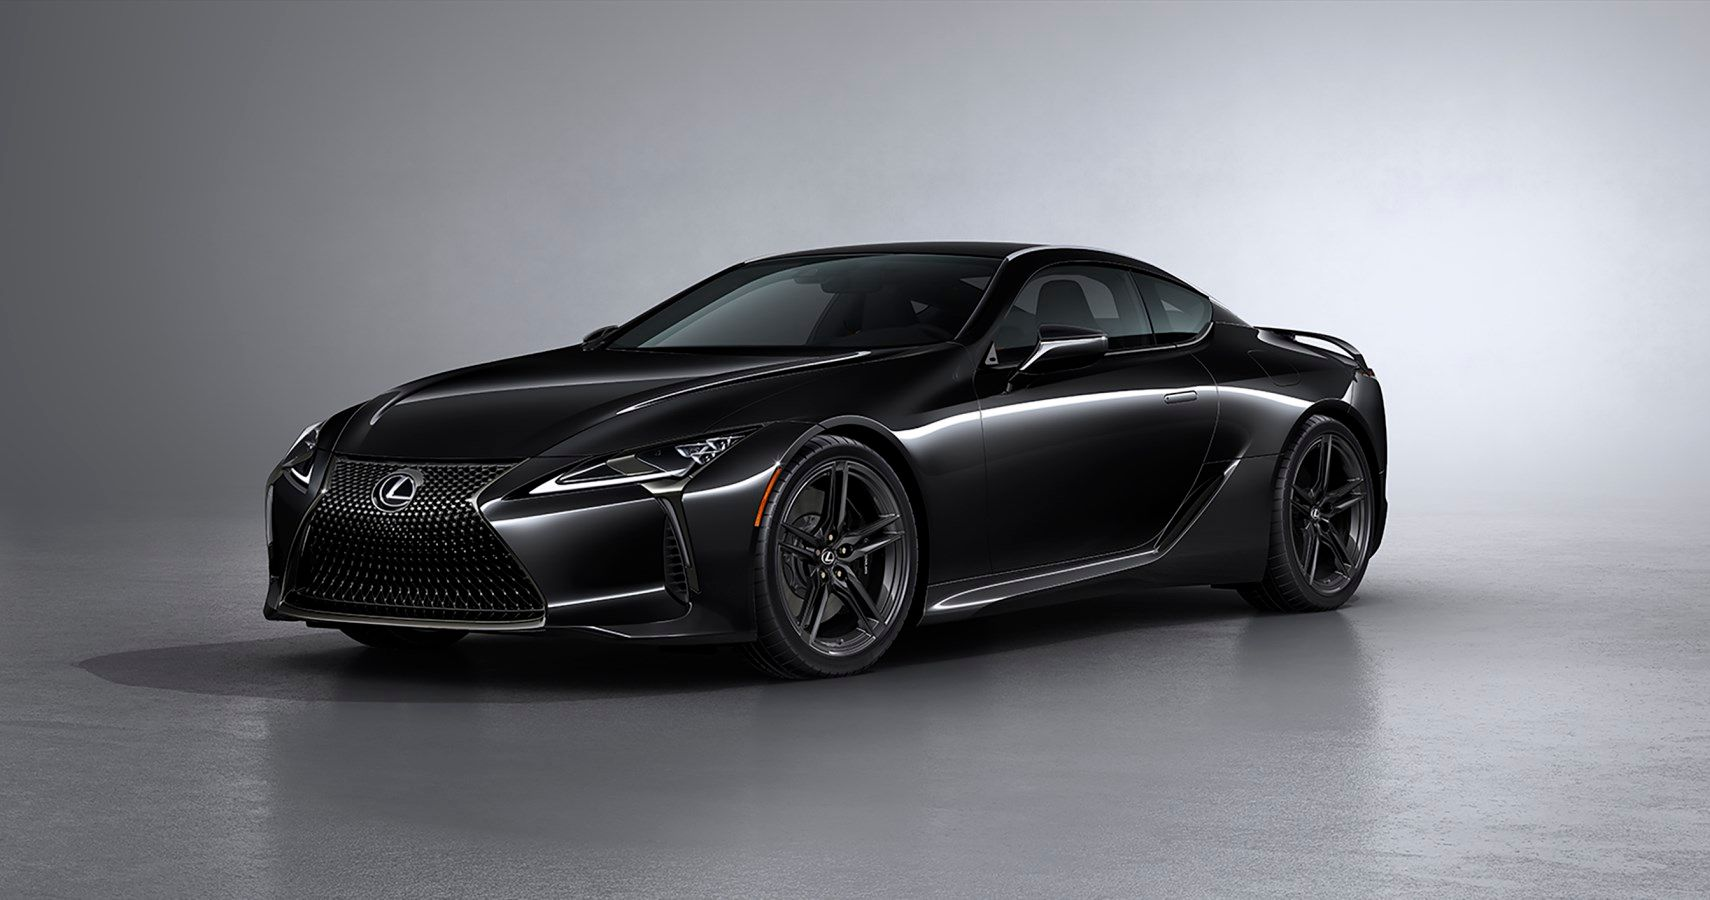 2021 Lexus LC 500 Gets Limited-Edition Inspiration Series